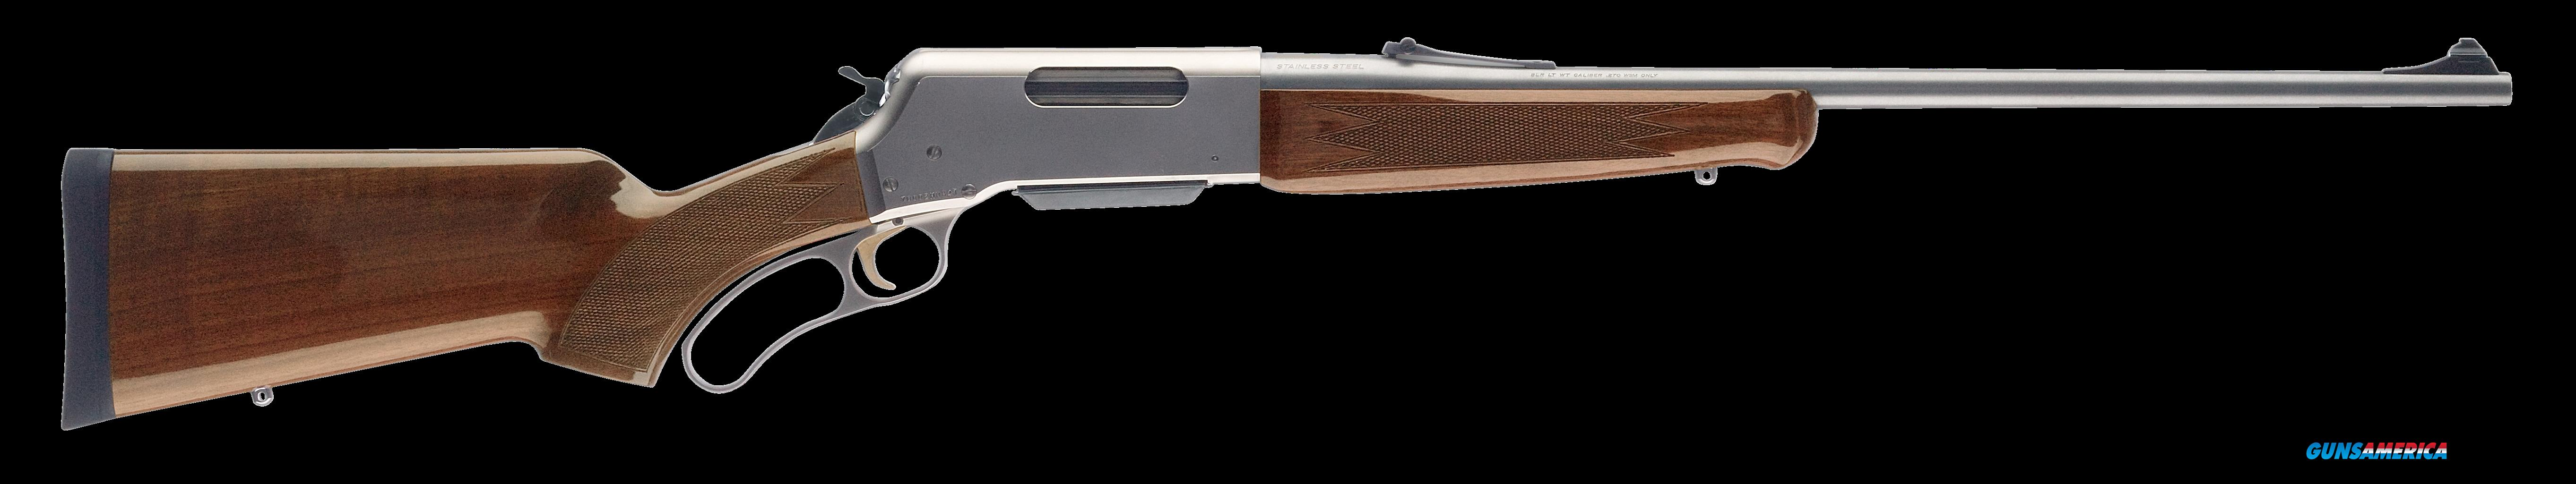 "Browning 034018120 BLR Lightweight Stainless with Pistol Grip Lever 358 Winchester 20"" 4+1 Walnut  Guns > Rifles > Browning Rifles > Lever Action"